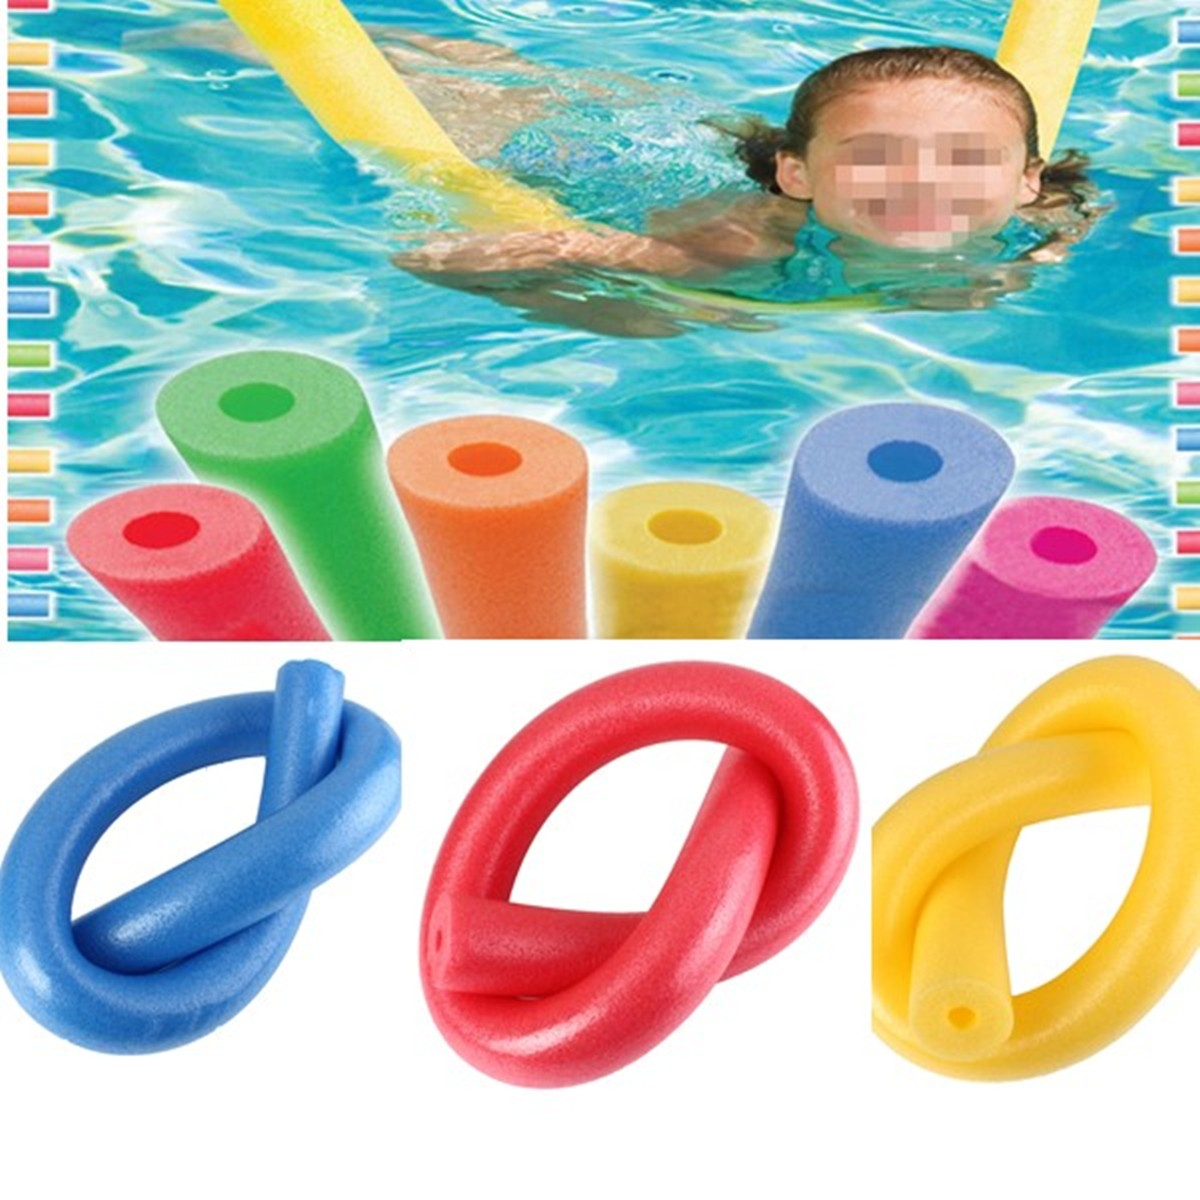 Flexible Swimming Pool Floating Pool Noodle Foam Water Noodle Aid Assistant Tools Kids Adult Learn Swimming Foam